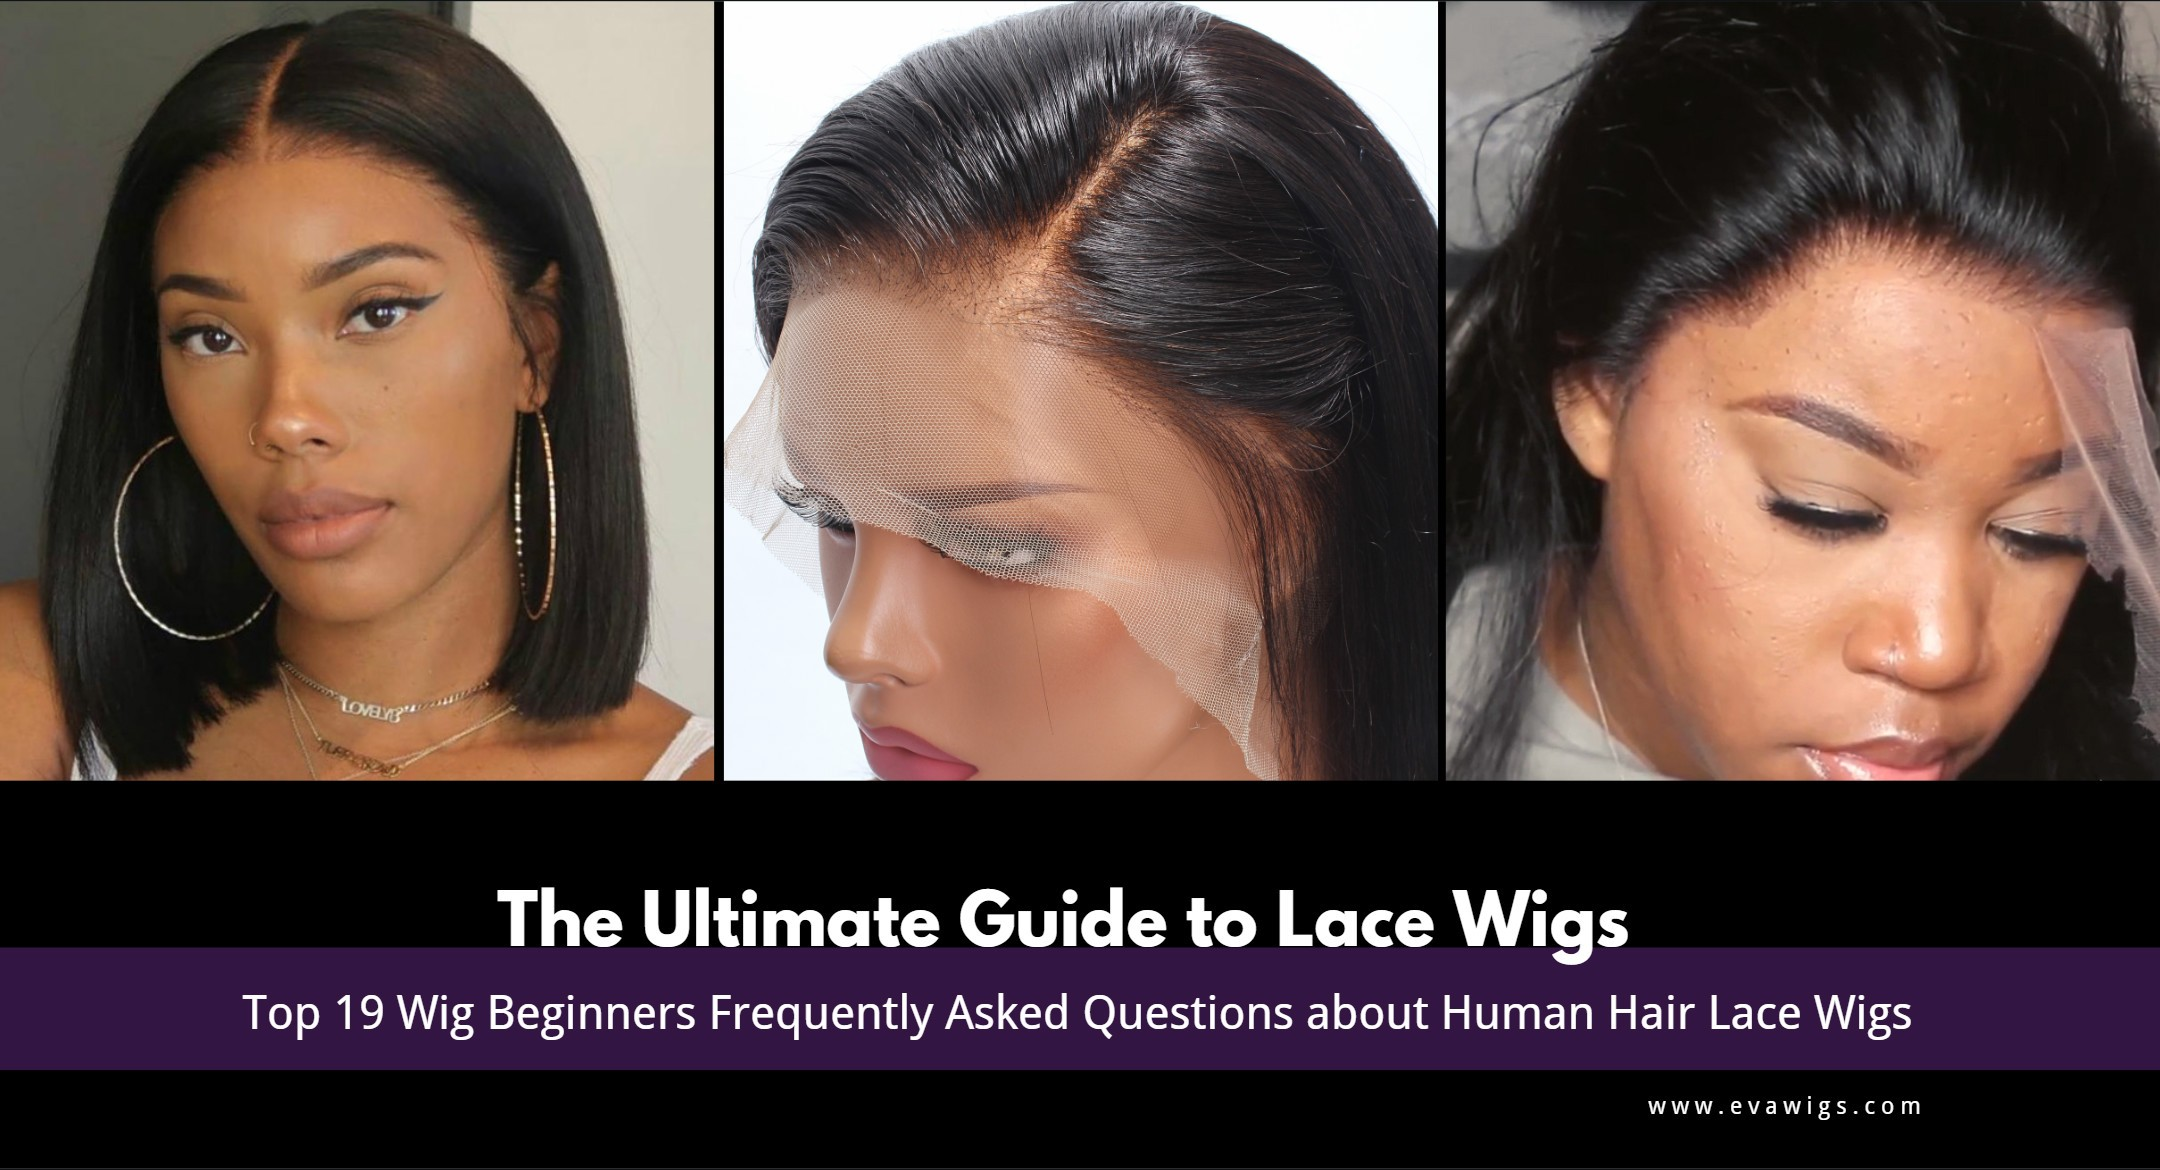 The Ultimate Guide to Lace Wigs -- Top 19 Wig Beginners Frequently Asked Questions about Human Hair Lace Wigs